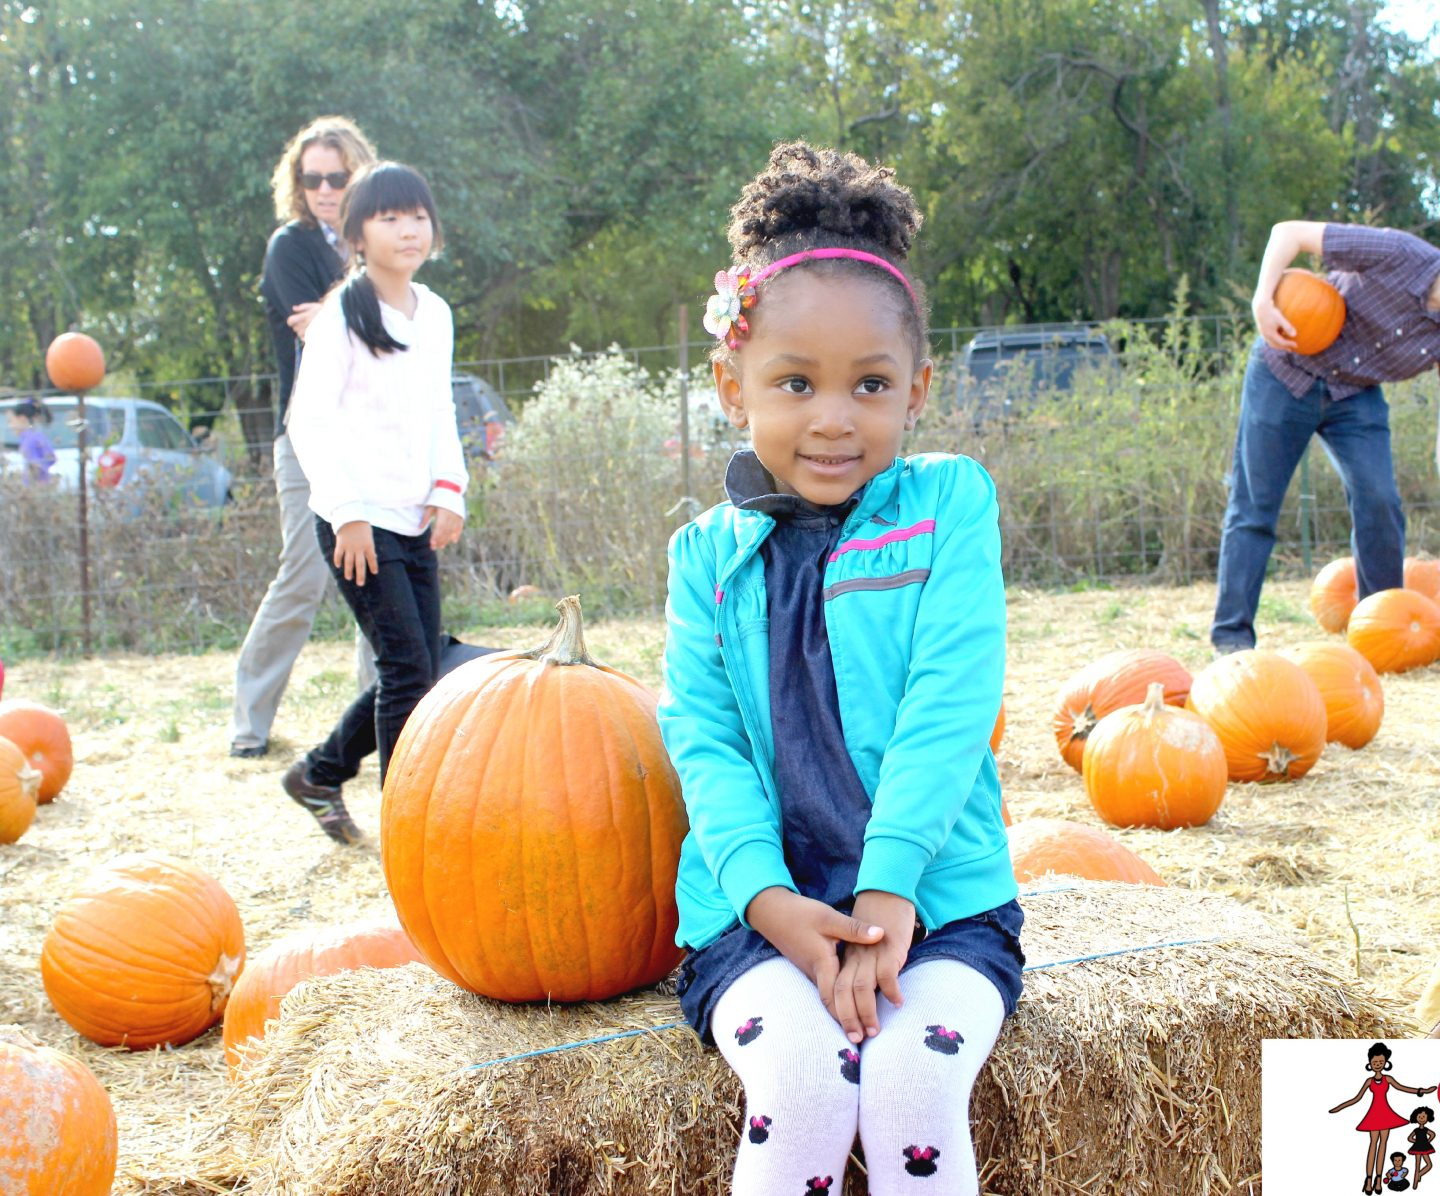 5 Things to do with kids during the fall